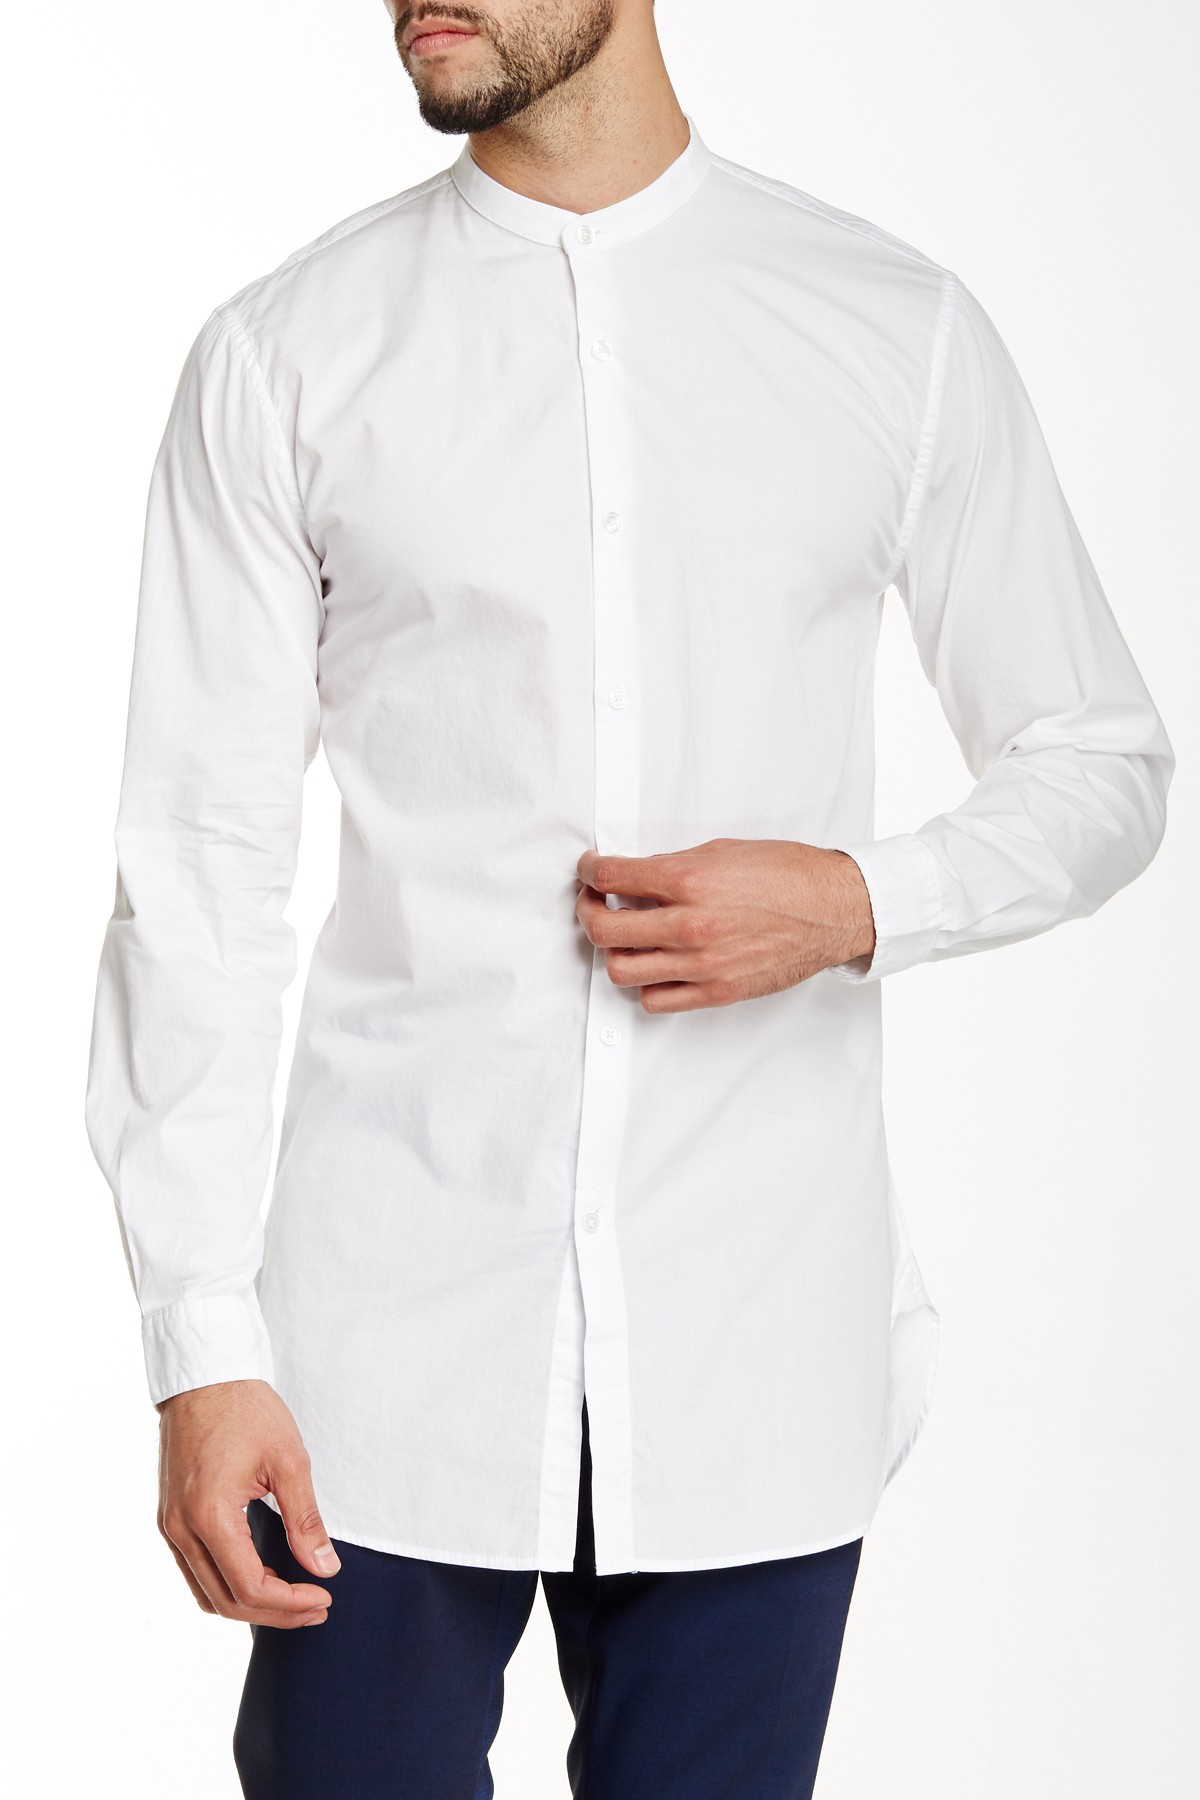 How To Wear A Grandad Collar Or Collarless Shirt. A versatile and easy to wear piece with the ability to transcend casual and formal dress codes, the Grandad collar shirt .